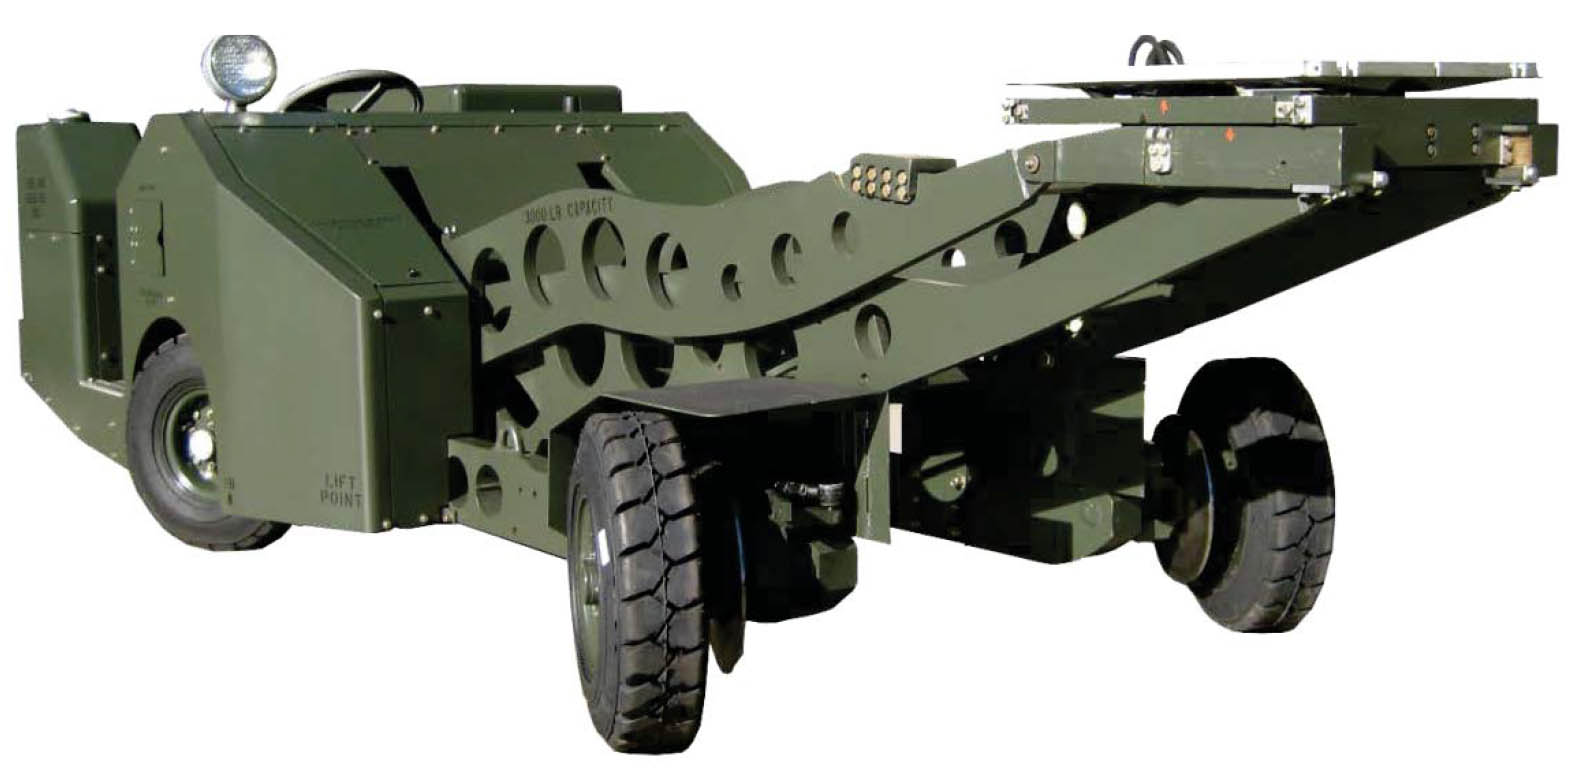 gas helicopter with Aircraft Bomb Loaders Aerial Munitions Lift Trucks on Aircraft Bomb Loaders Aerial Munitions Lift Trucks also Watch additionally Ceg9519 Colossus Xt Mega Monster Truck besides Aberdeen Airport in addition Halter Marine Mk Mod 2 High Speed Assault Craft 18920.